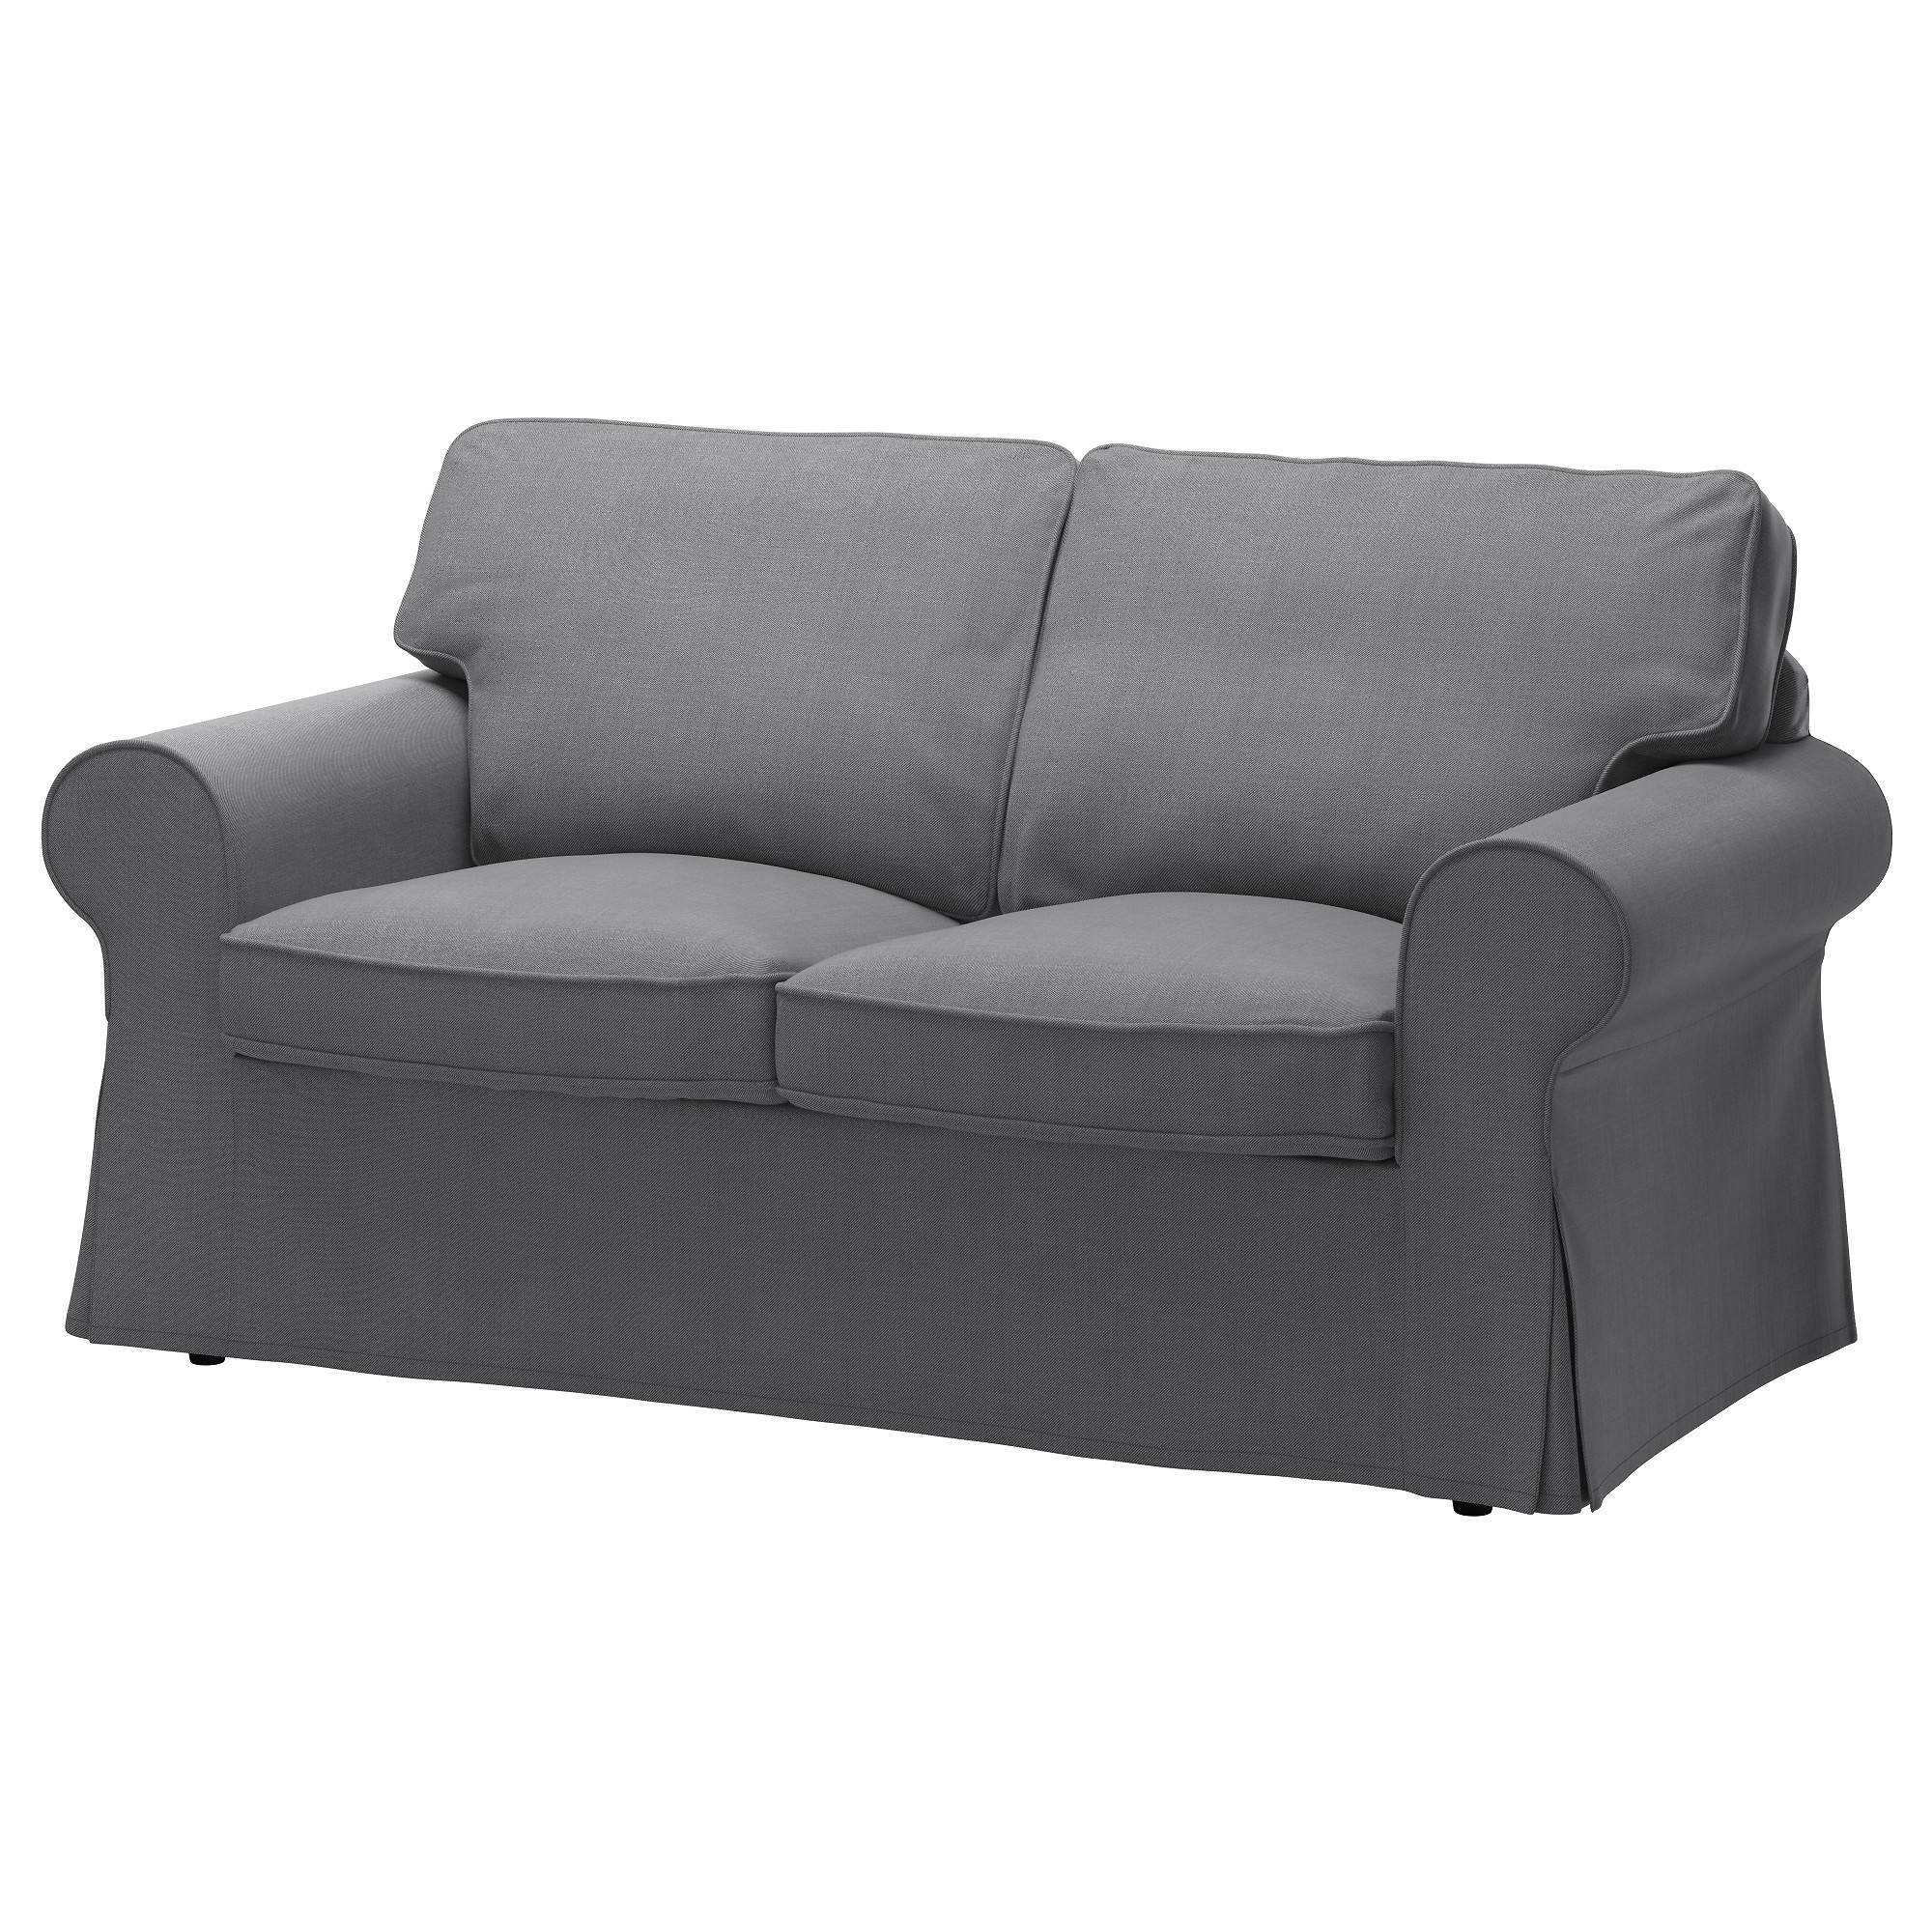 Small Sofa & 2 Seater Sofa | Ikea for Two Seater Sofas (Image 24 of 30)